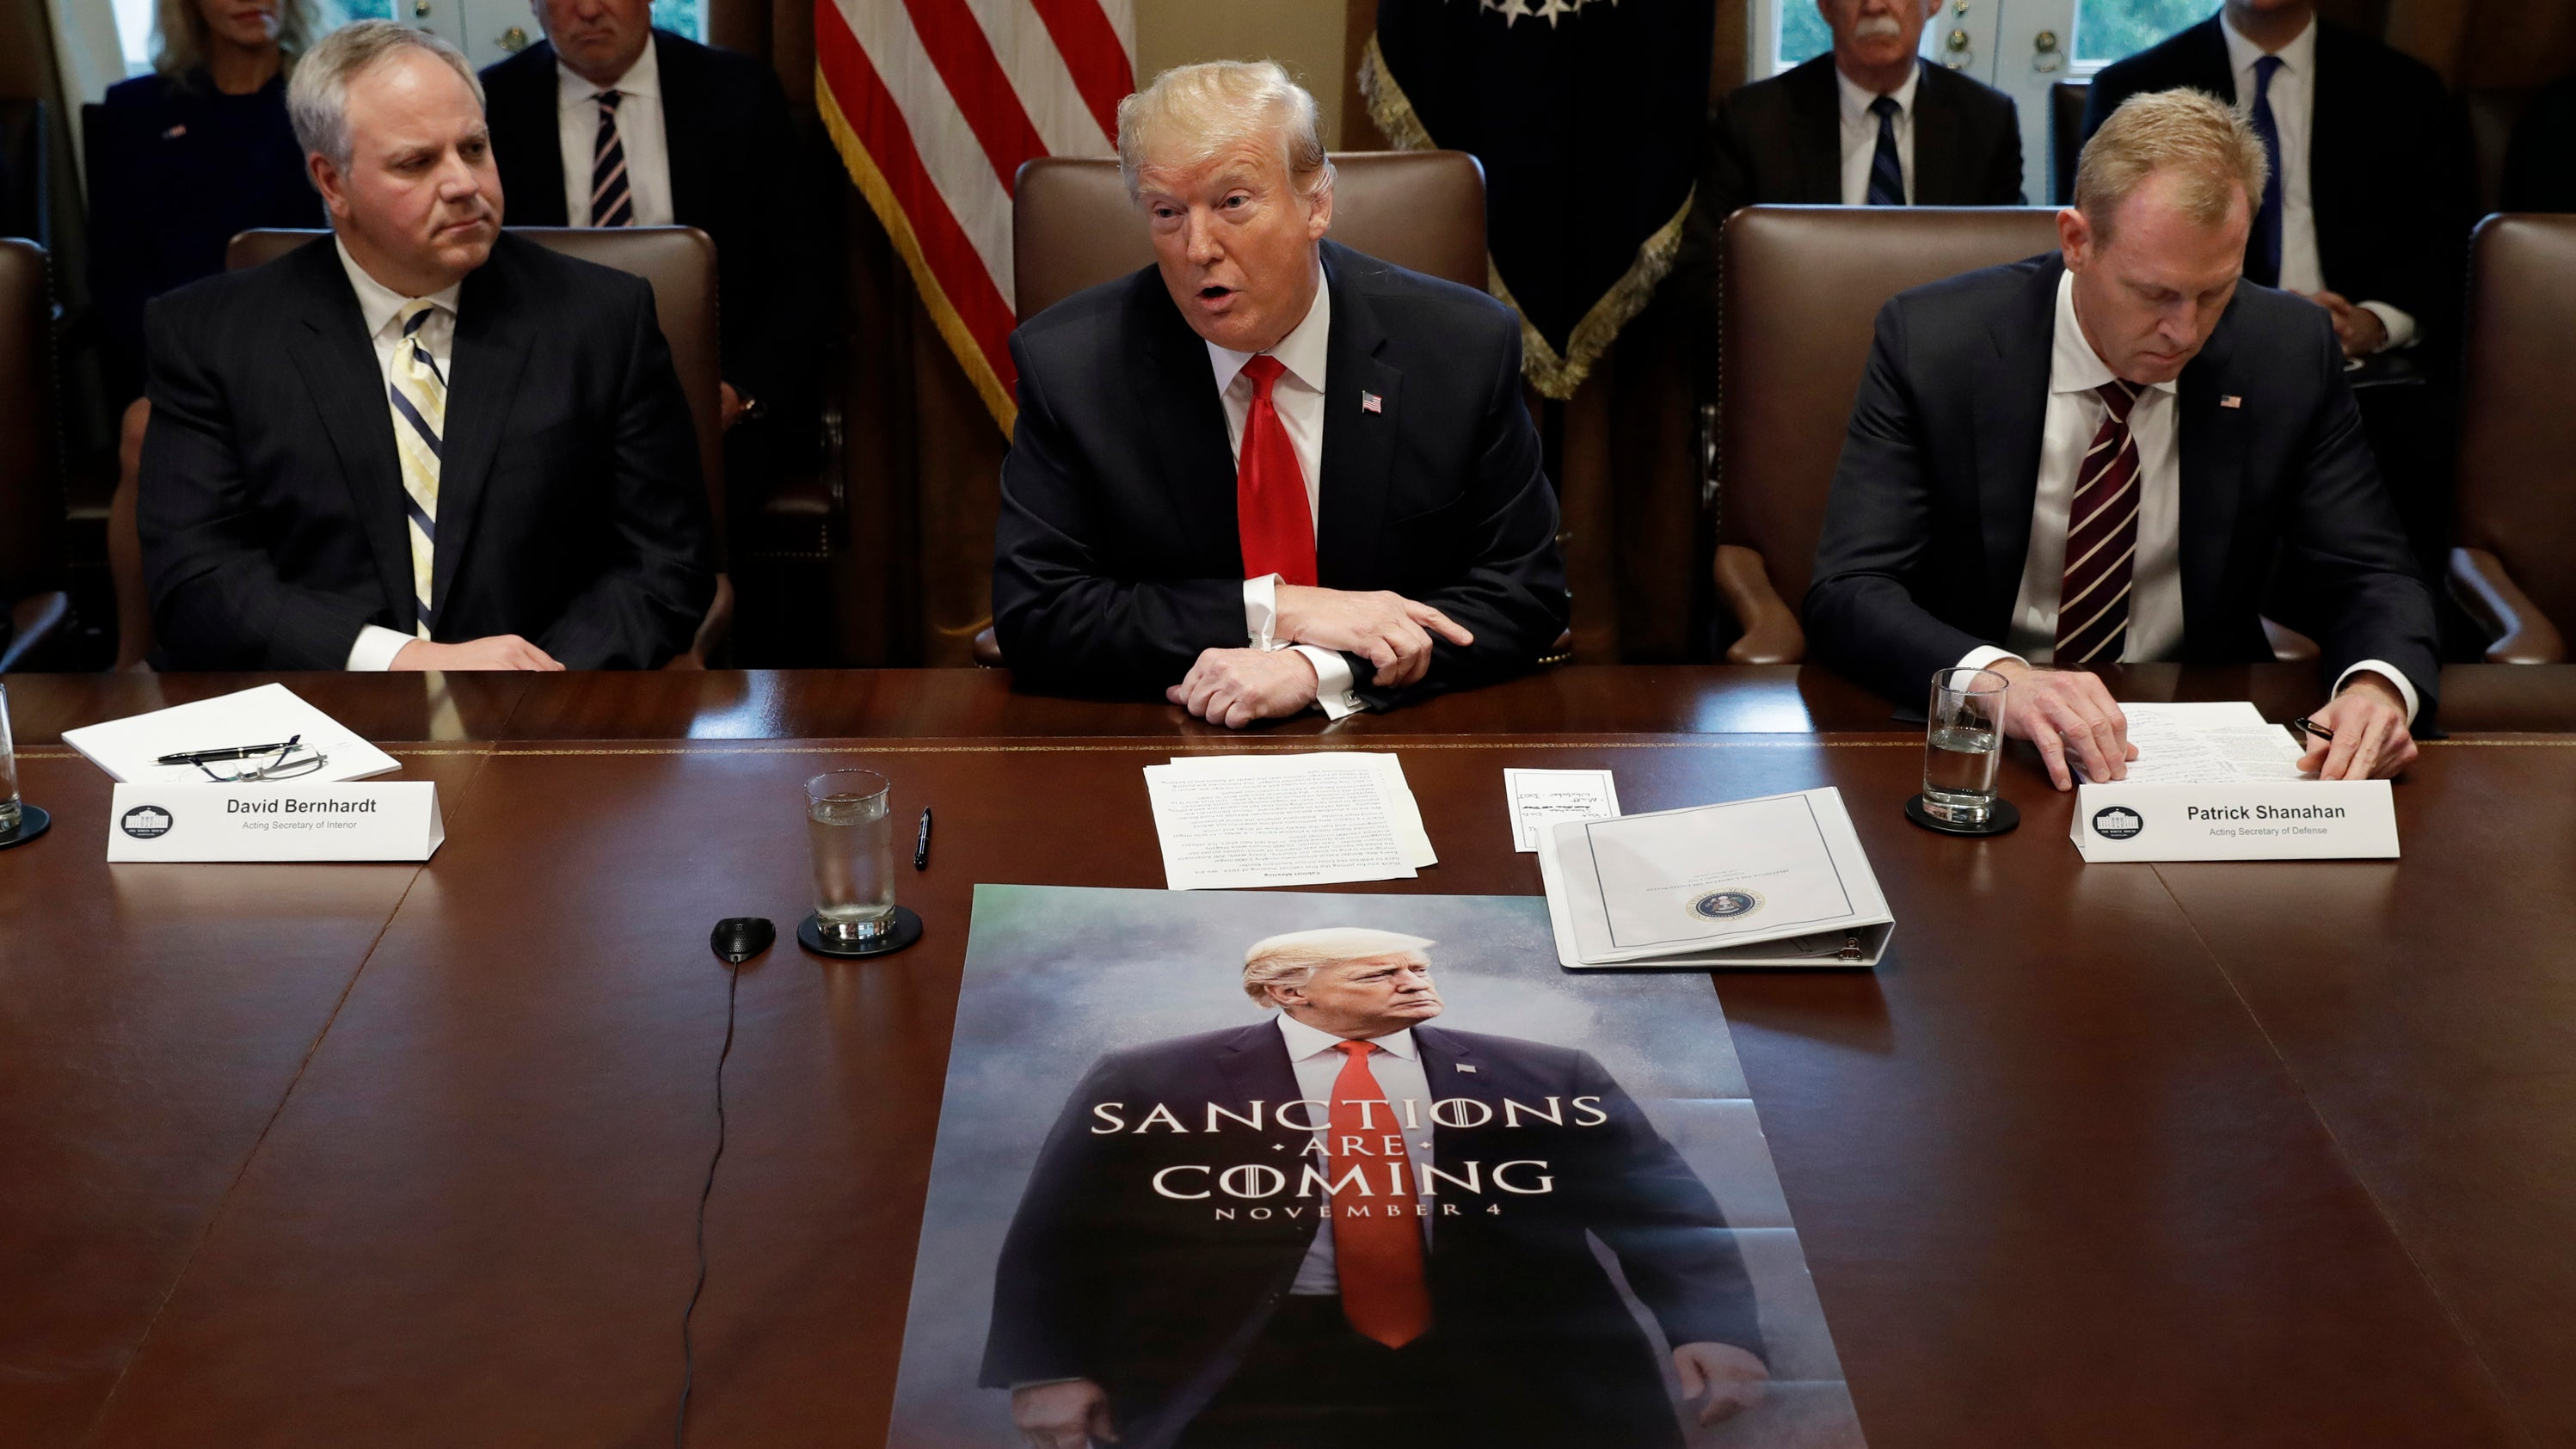 Trump's AbsurdGame Of Thrones Poster Is Now Real And Making Appearances At Meetings